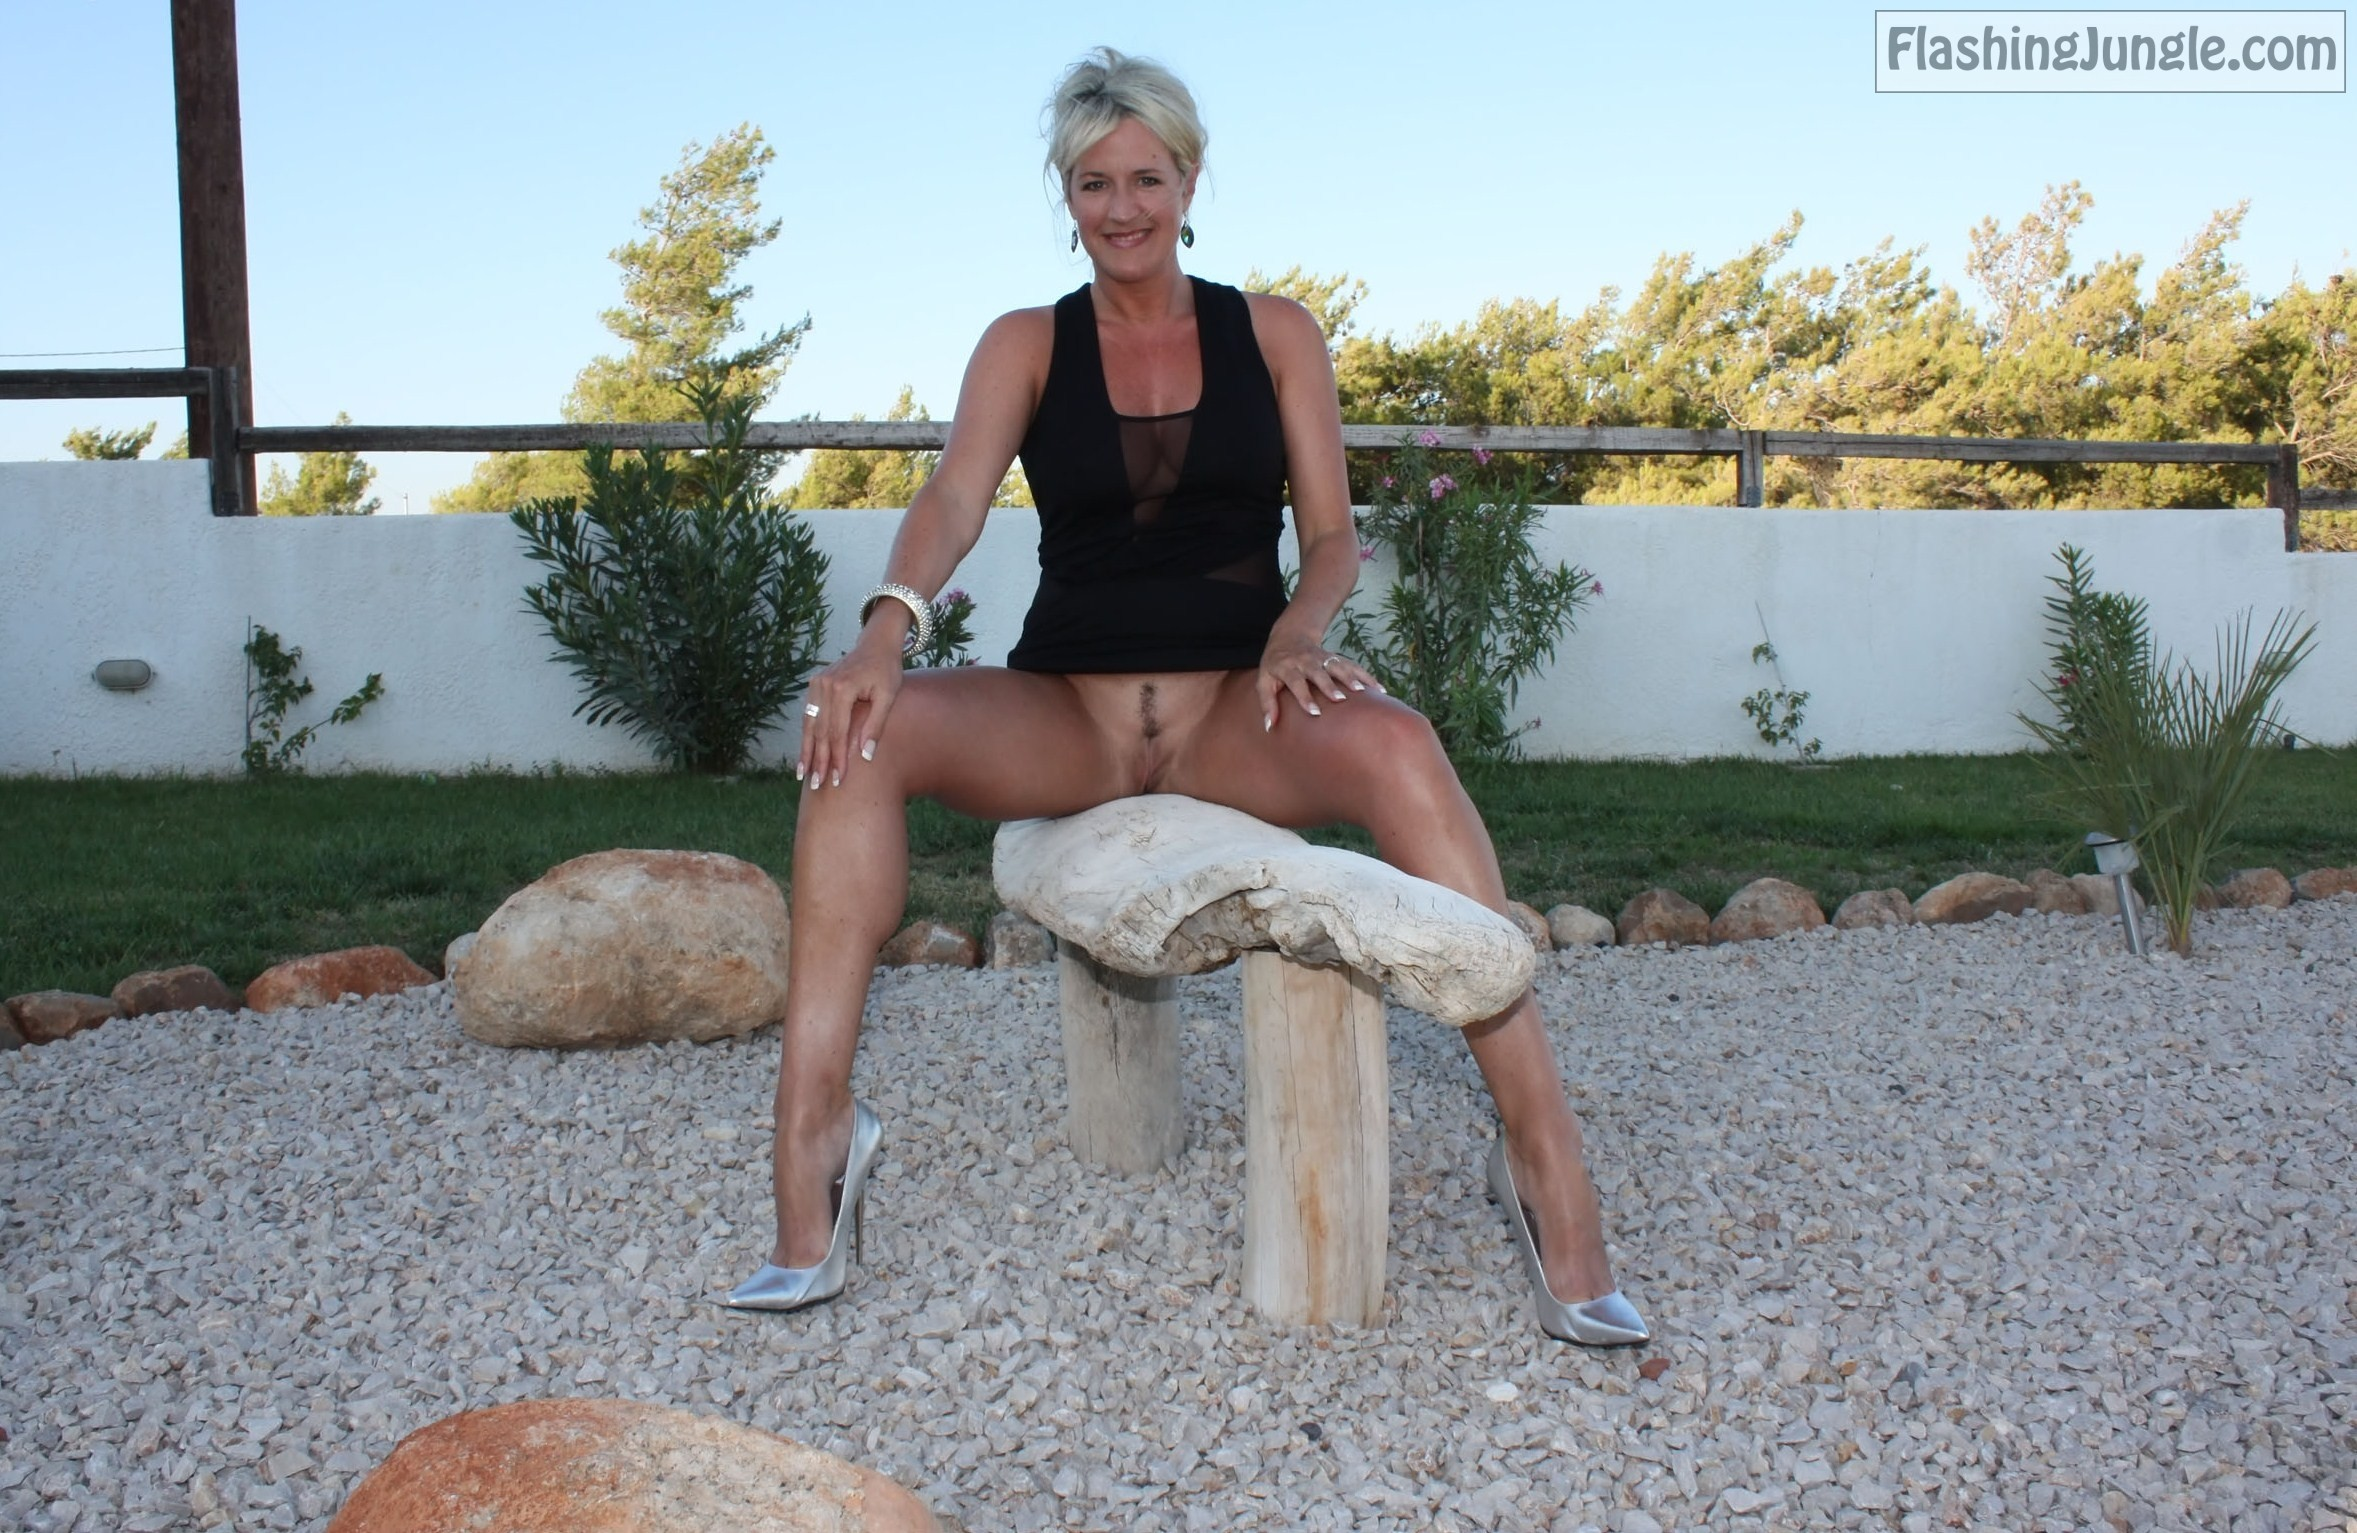 Pantyless MILF Lisa Flashing Outdoors